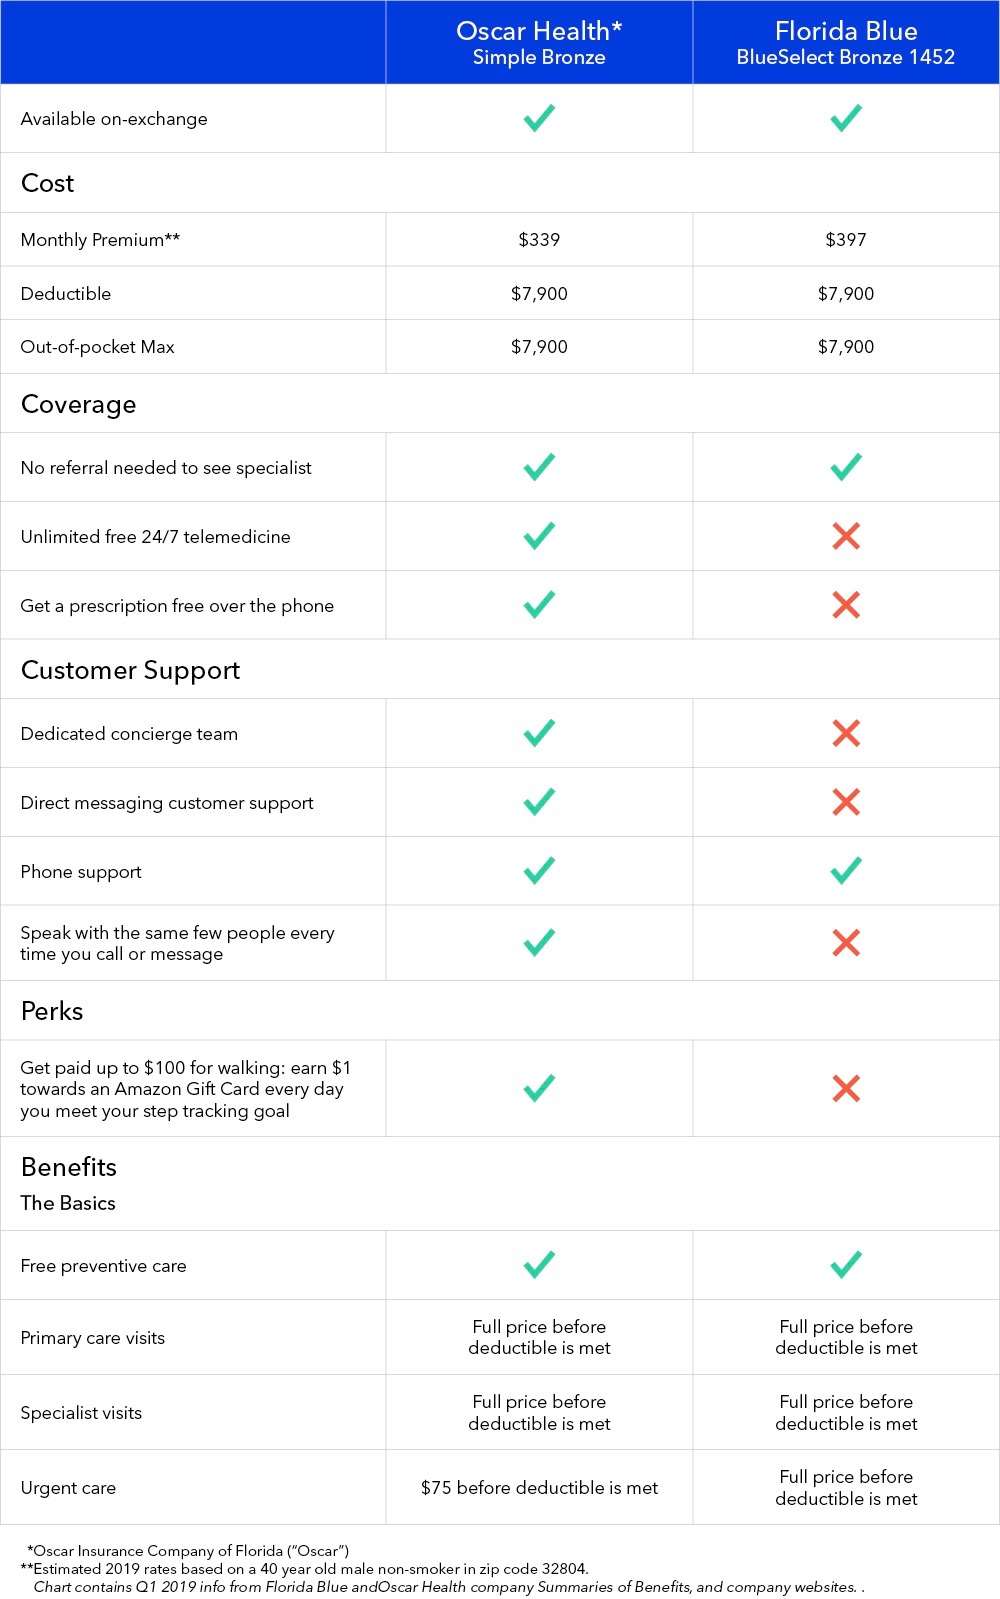 Health Insurance Florida >> Health Insurance Company Comparison Oscar Vs Blue Cross Blue